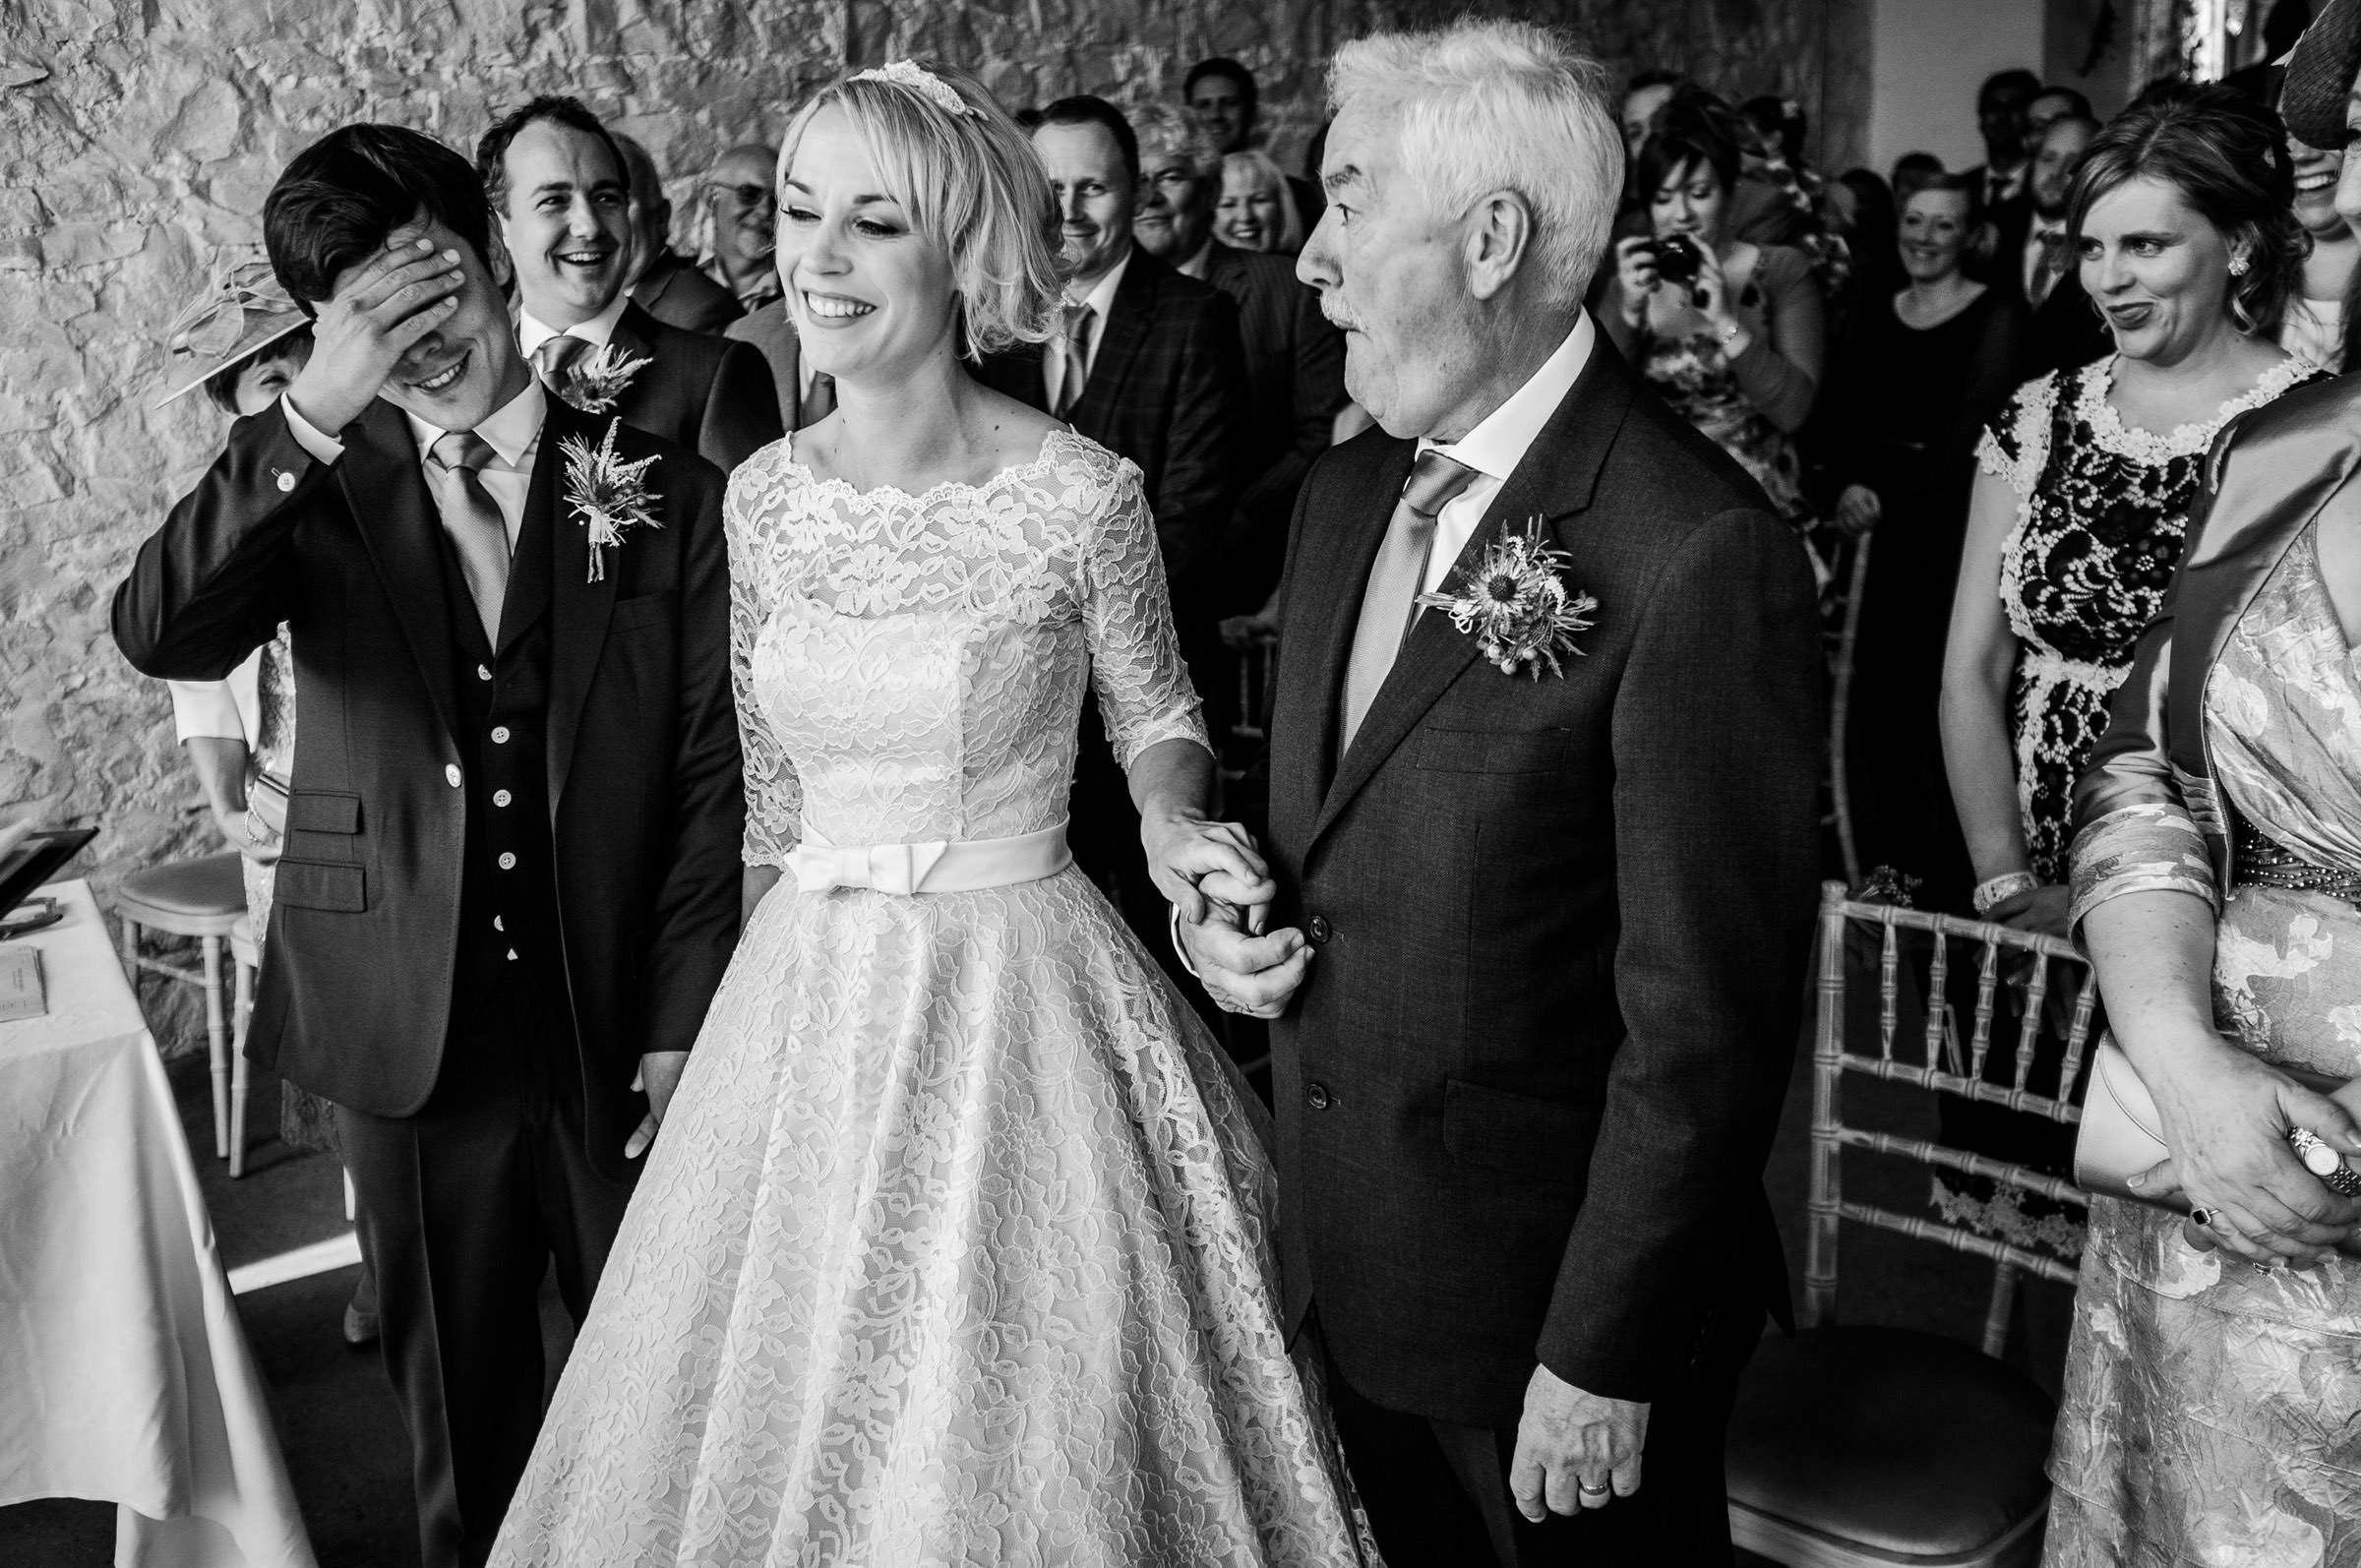 Reportage Wedding Photography South Wales 029.jpg